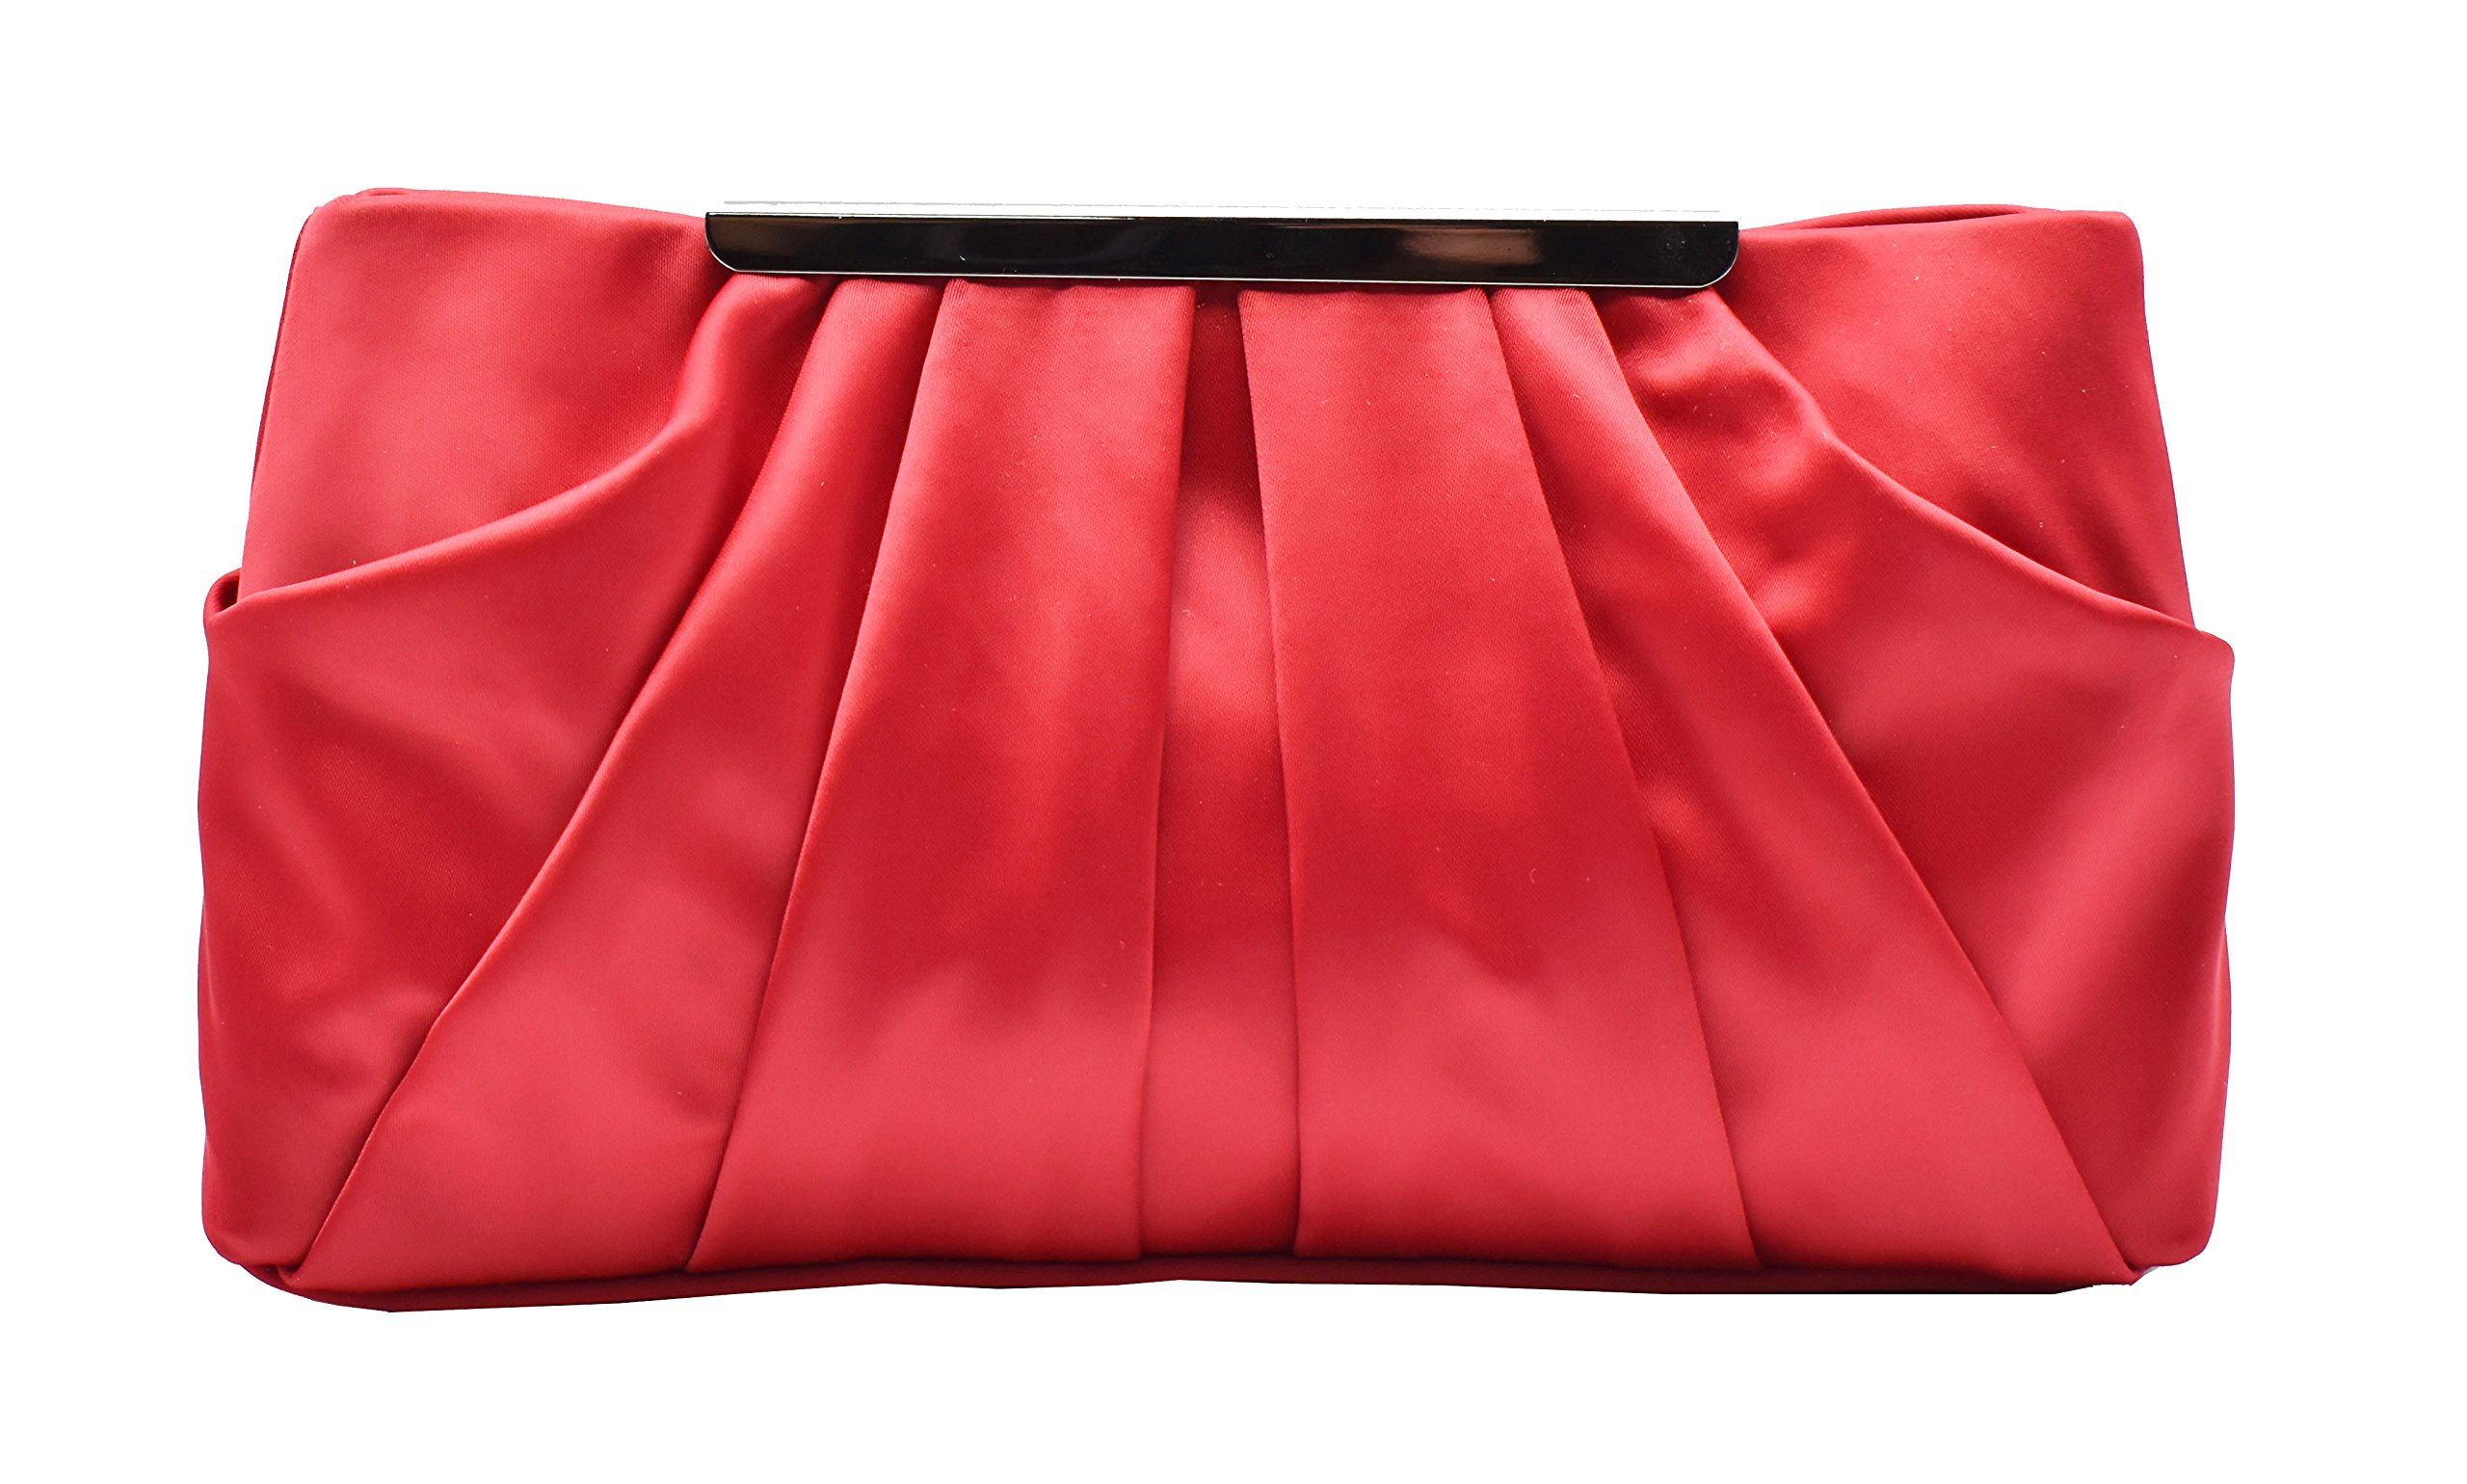 Womens Pleated Satin Evening Handbag Clutch With Detachable Chain Strap Wedding Cocktail Party Bag (Red) by expouch